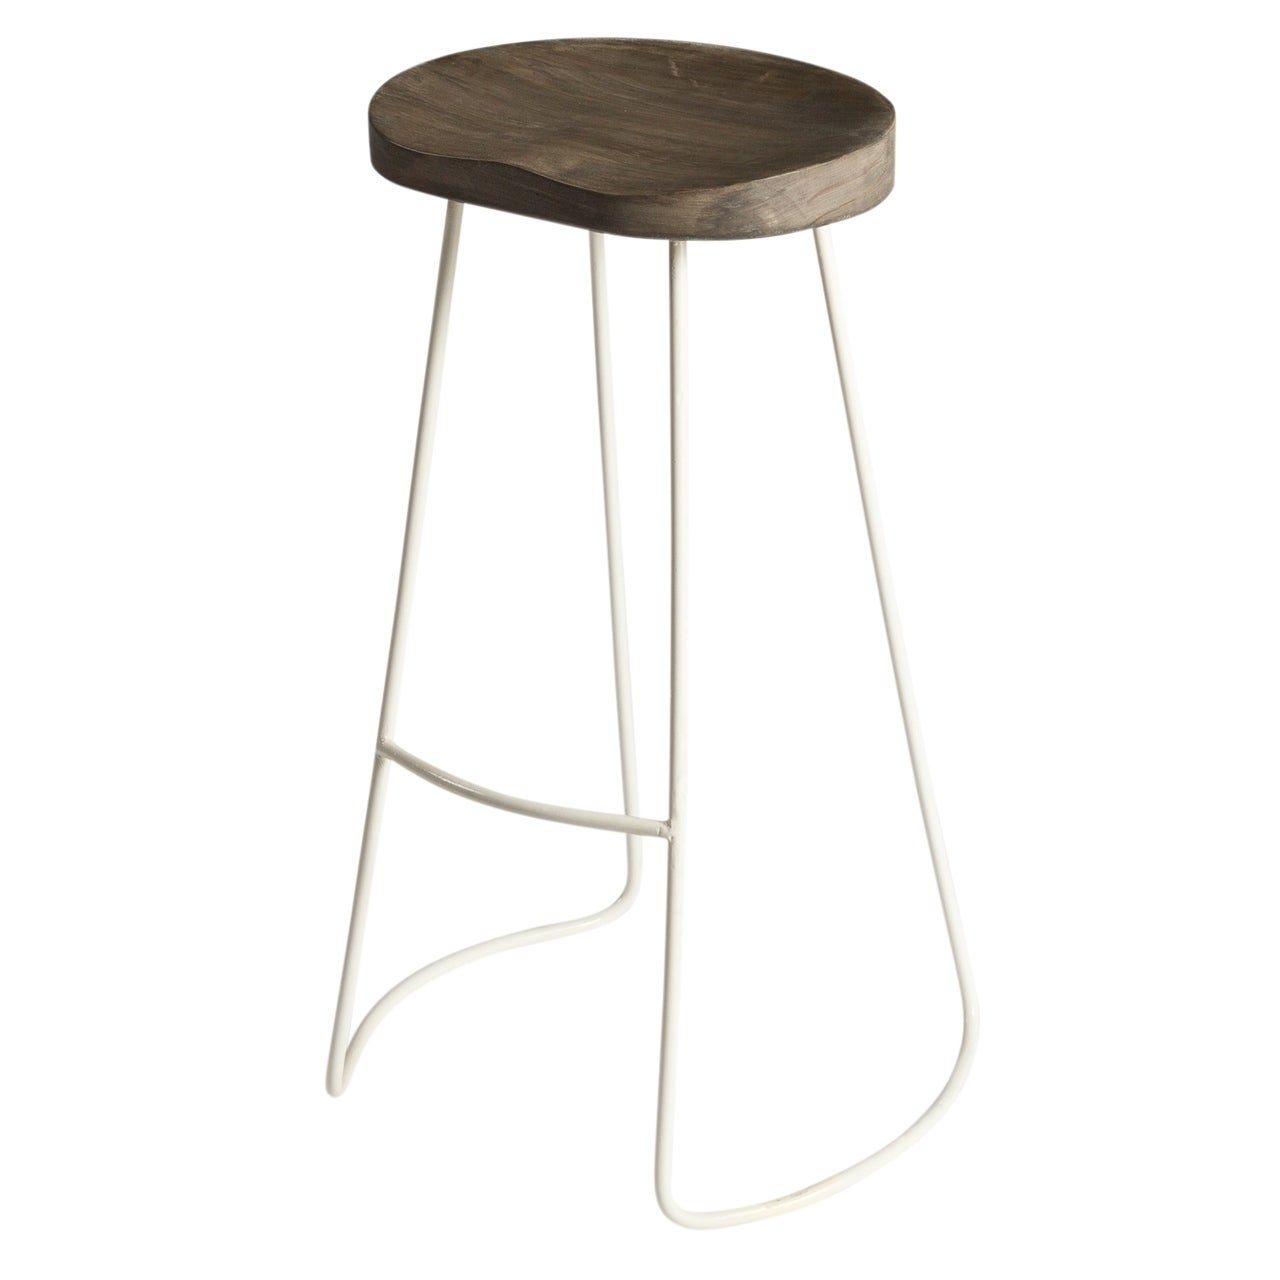 Shop handmade cg sparks iconic tractor seat 29 high bar stool india on sale free shipping today overstock com 10082437